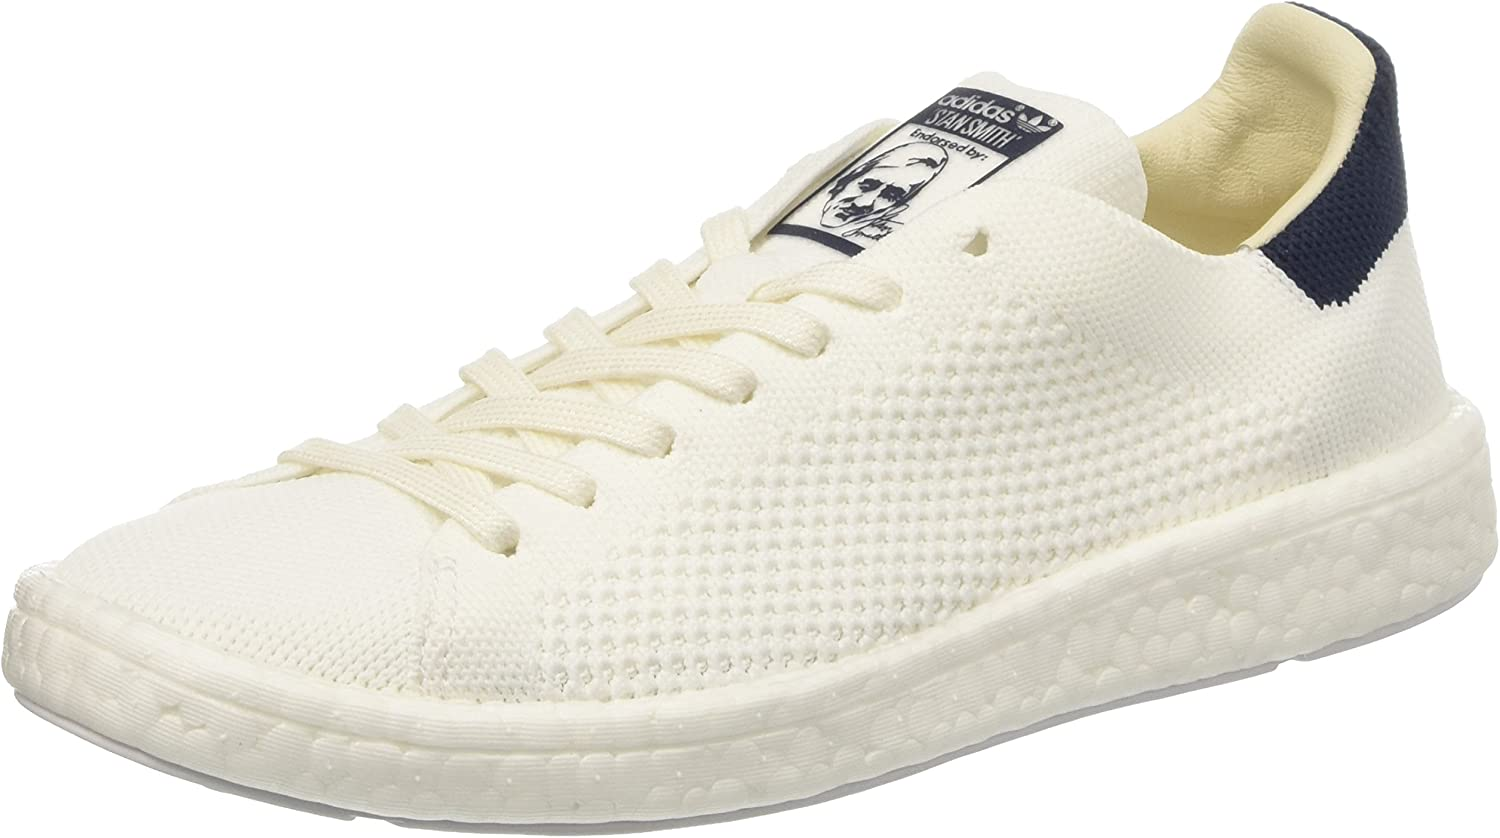 Adidas Men's Stan Smith Boost Primeknit Trainers